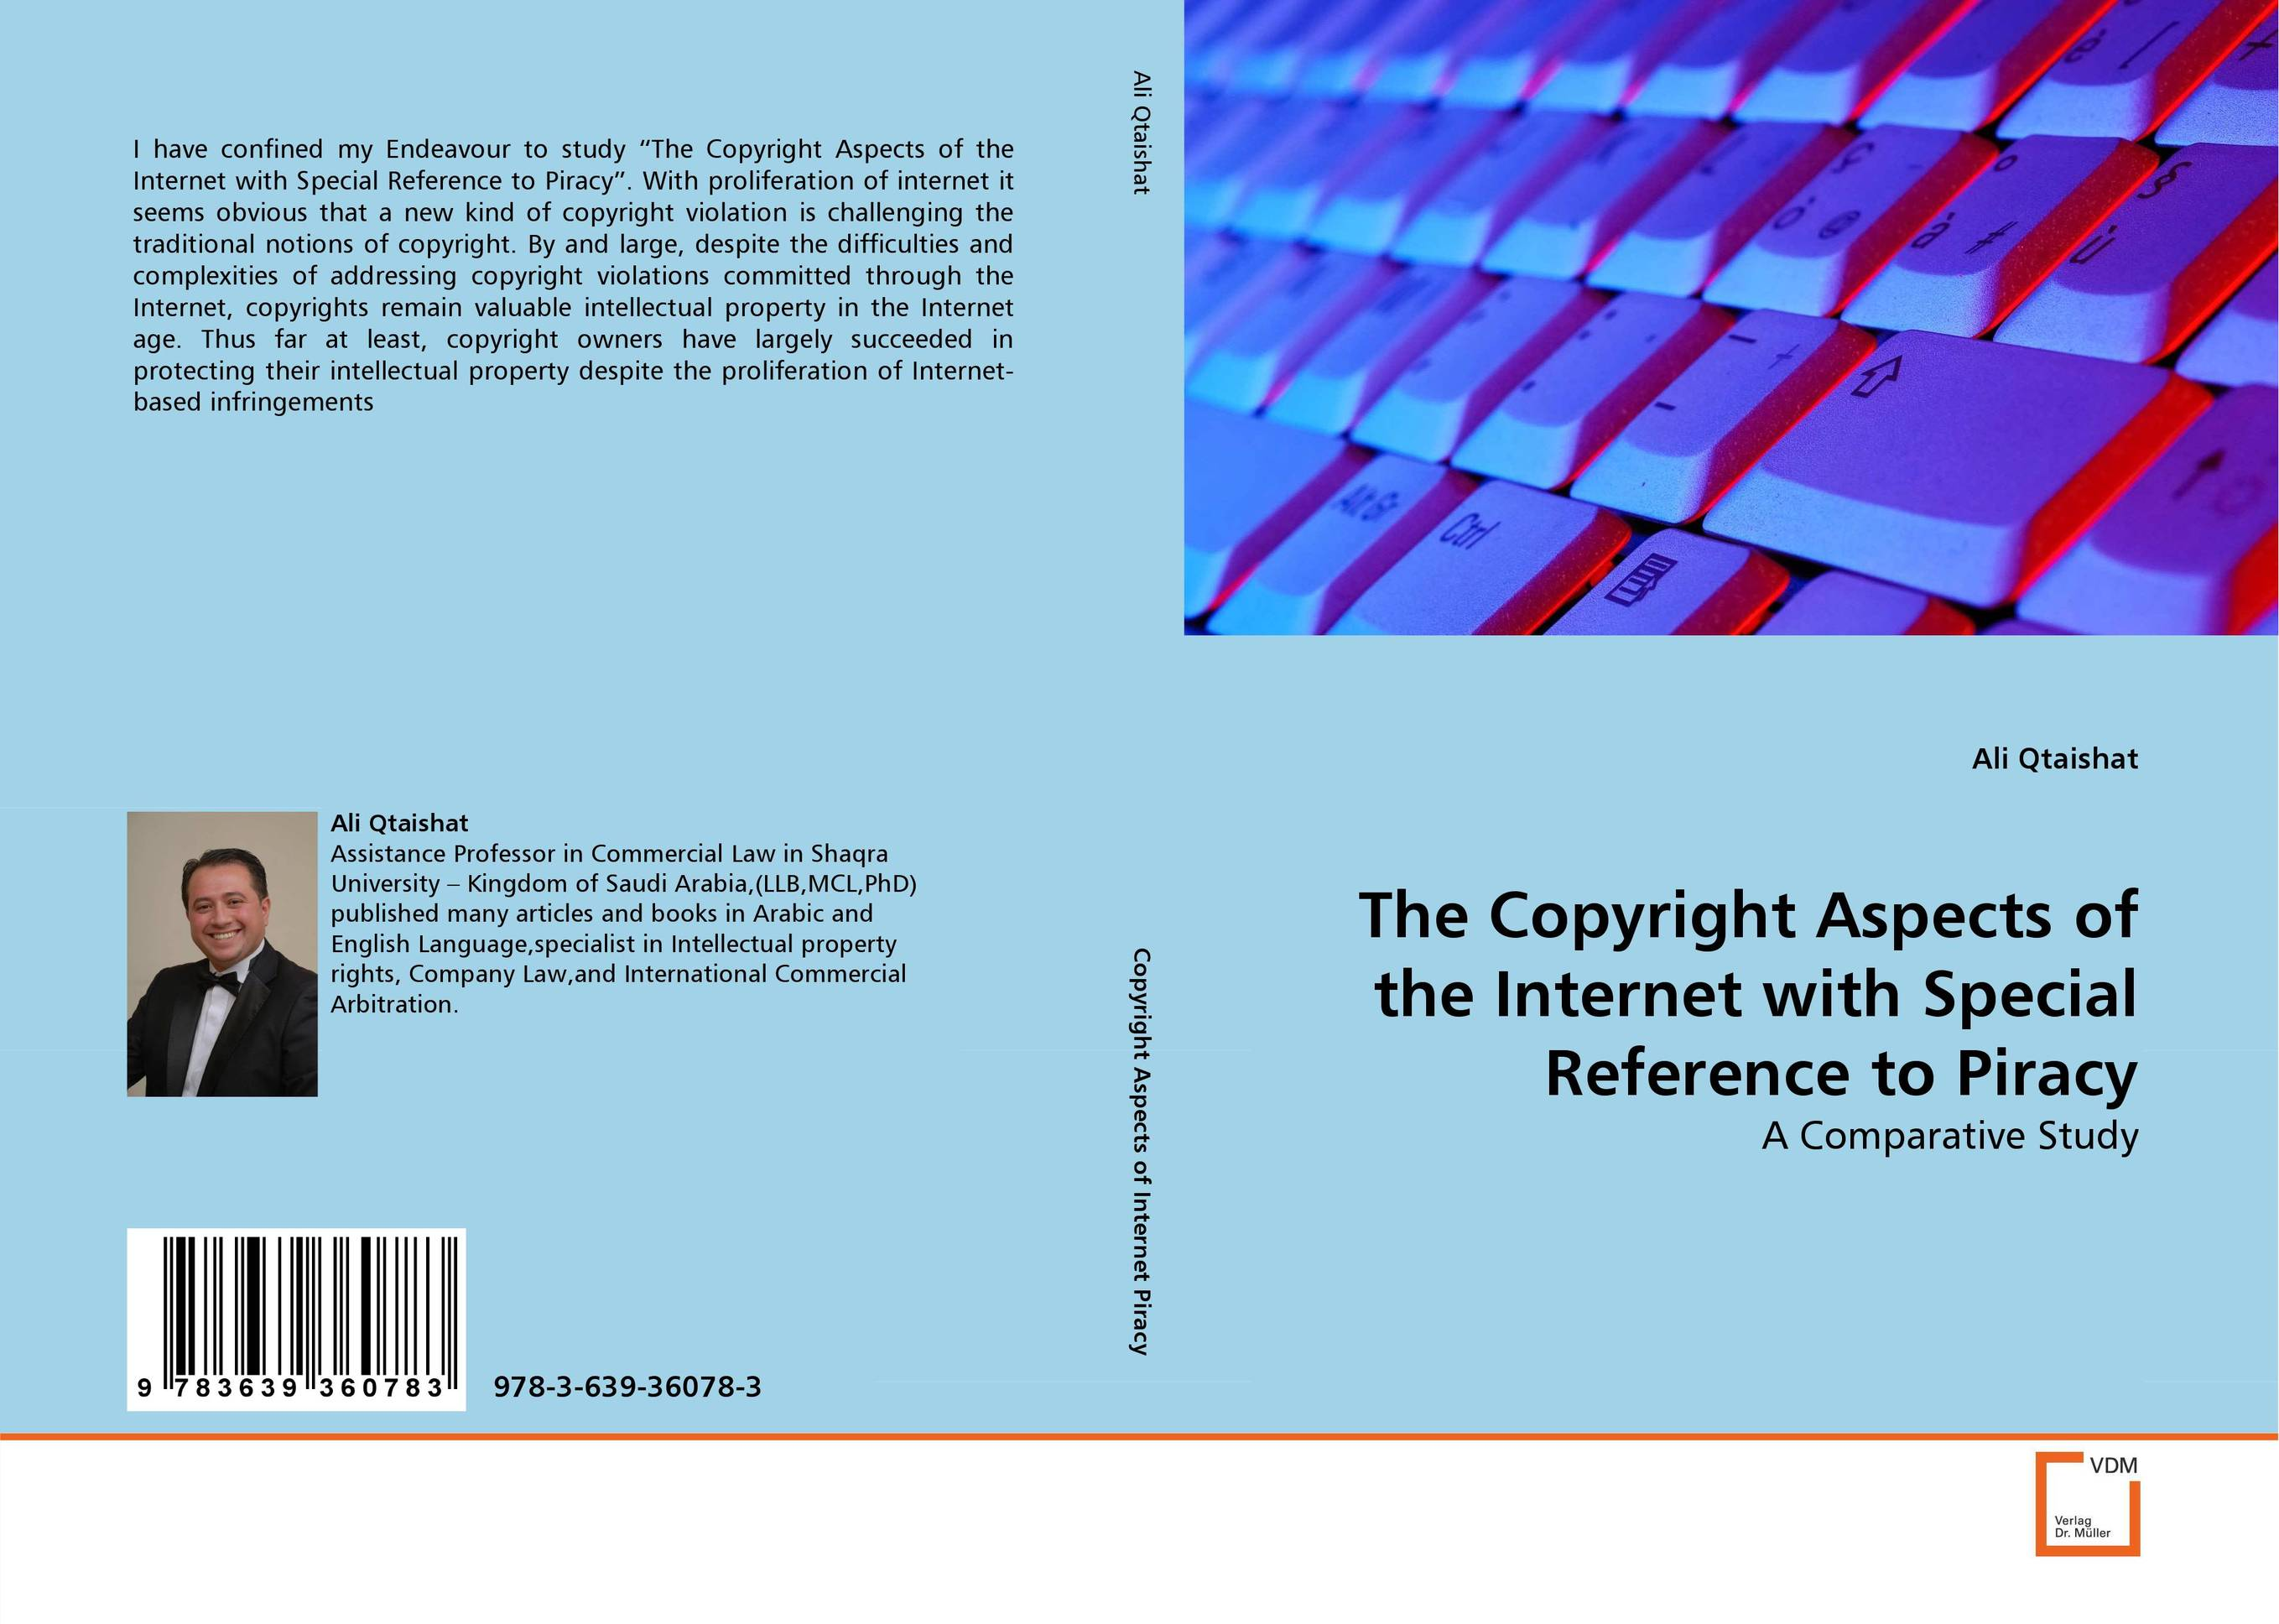 The Copyright Aspects of the Internet with Special Reference to Piracy ecology of wildife in special reference to gir lion p leo persica